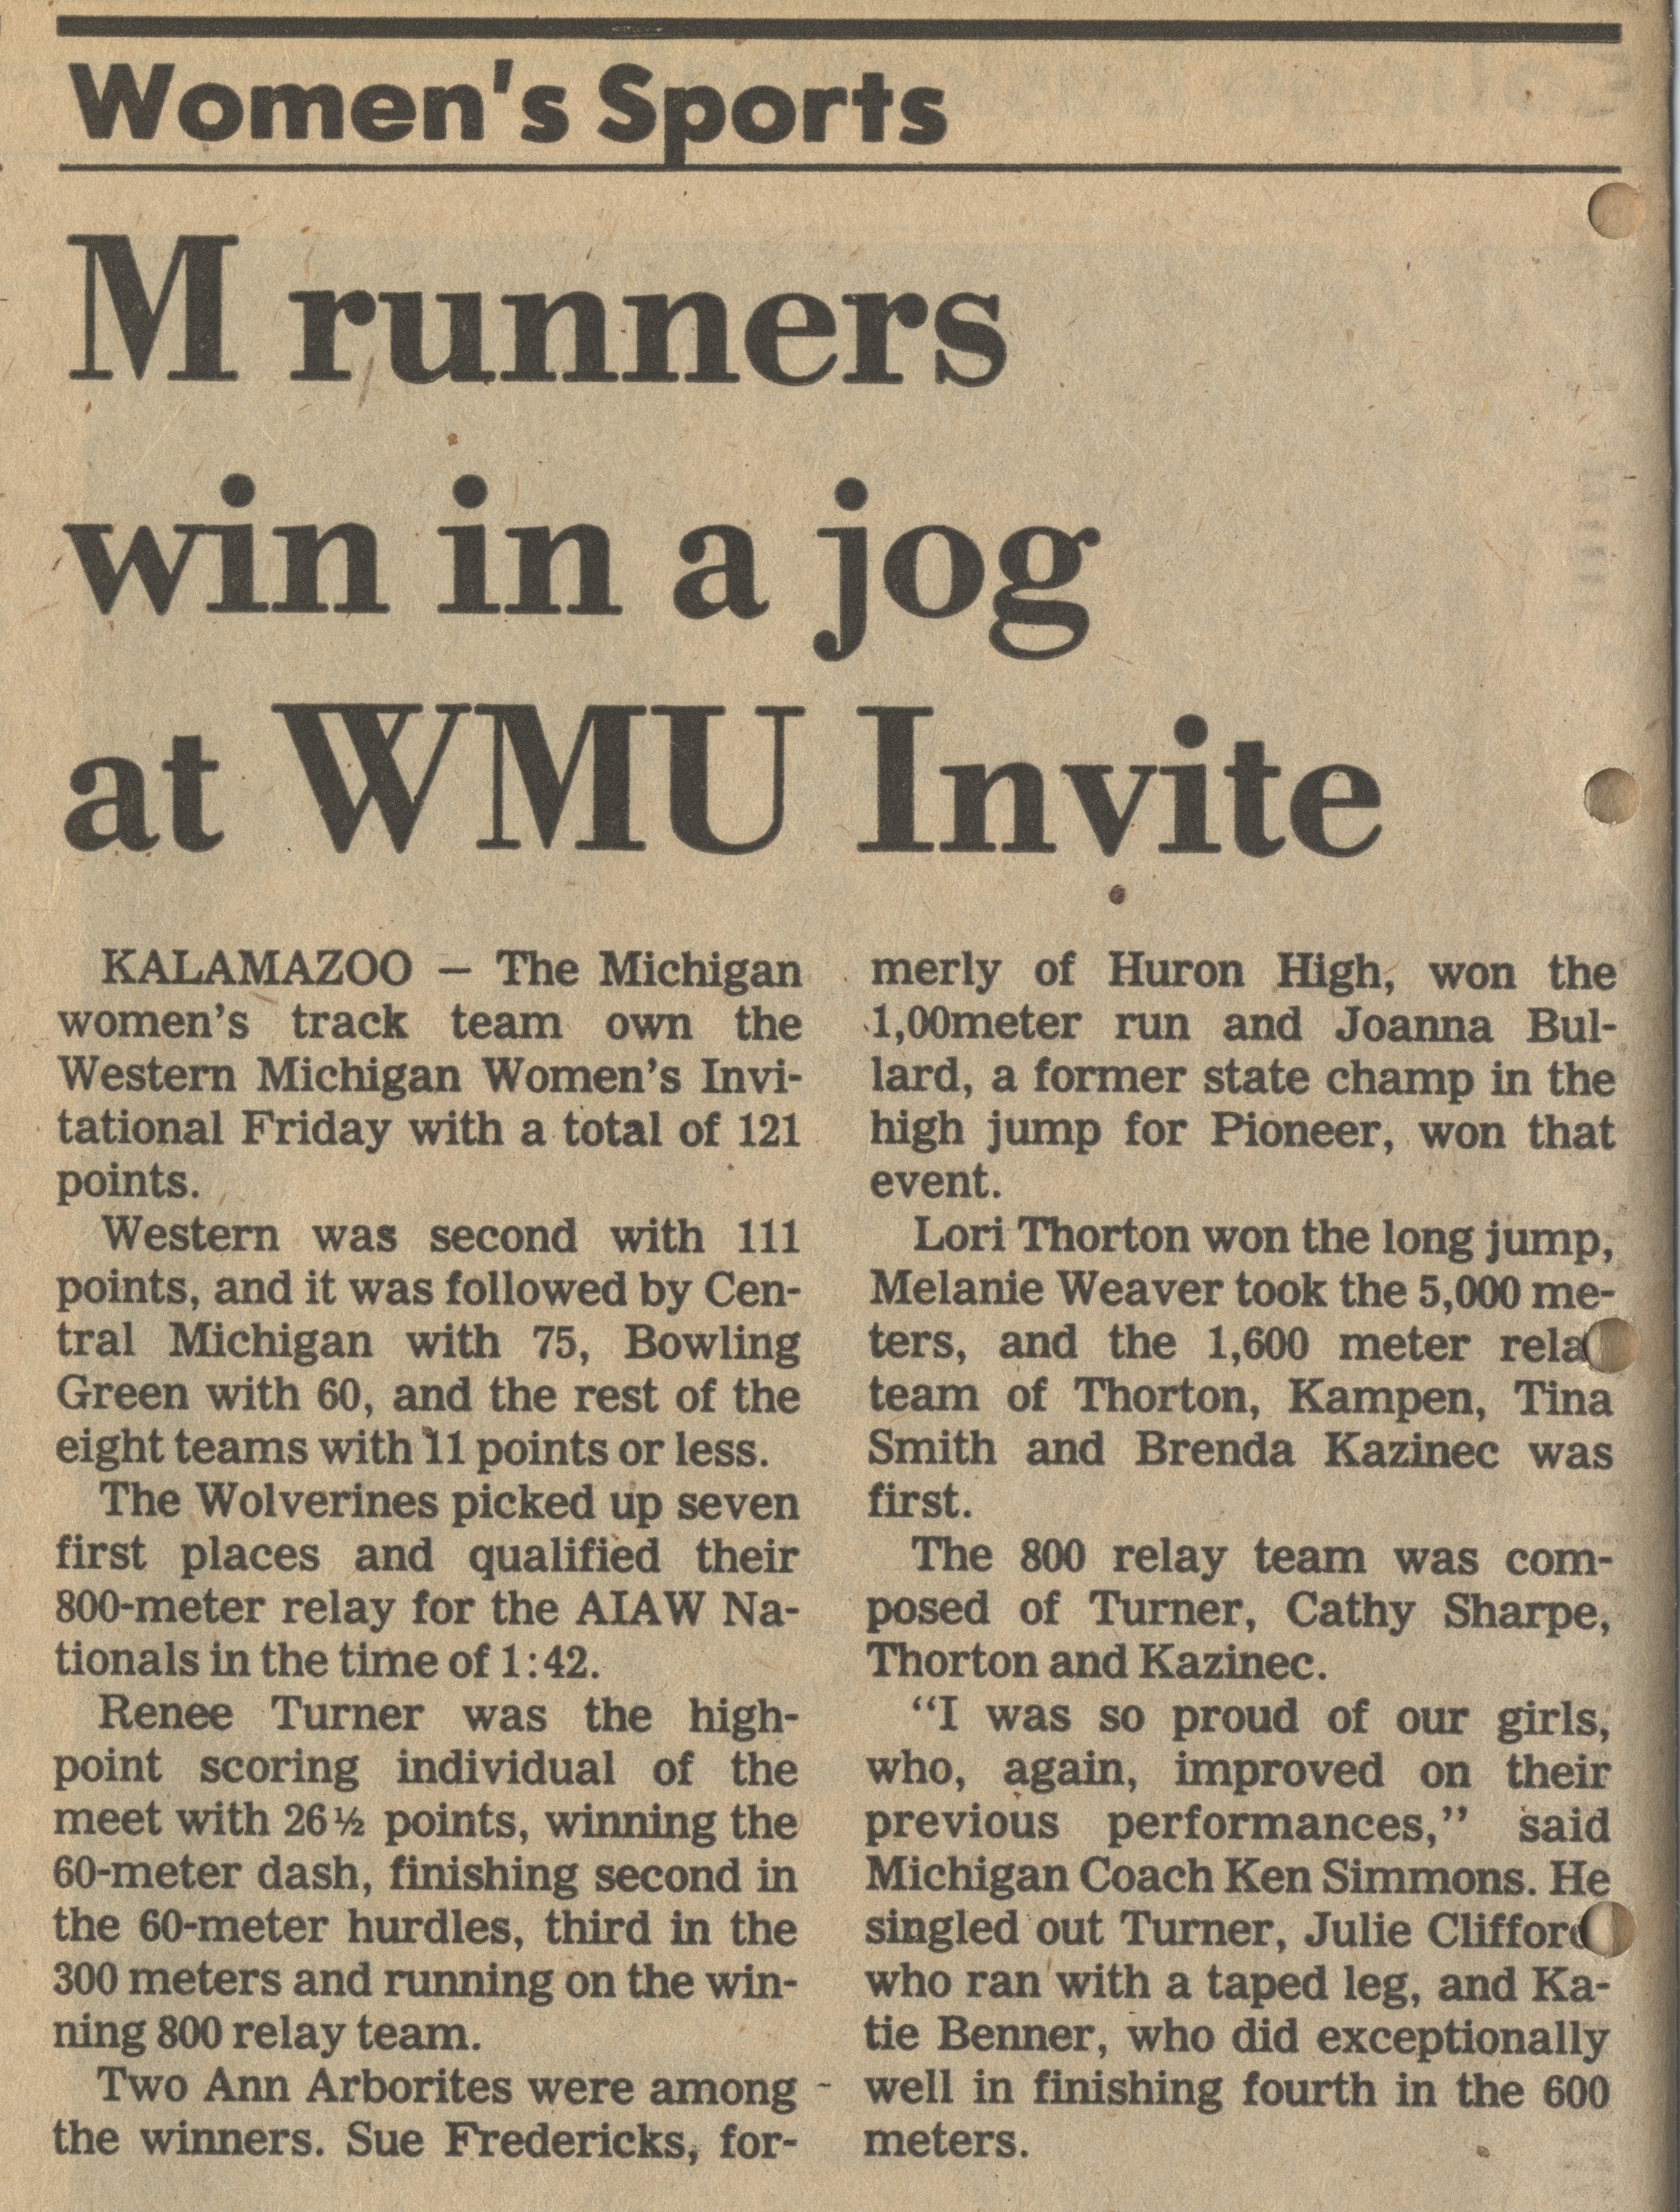 M Runners Win In A Jog At WMU Invite image